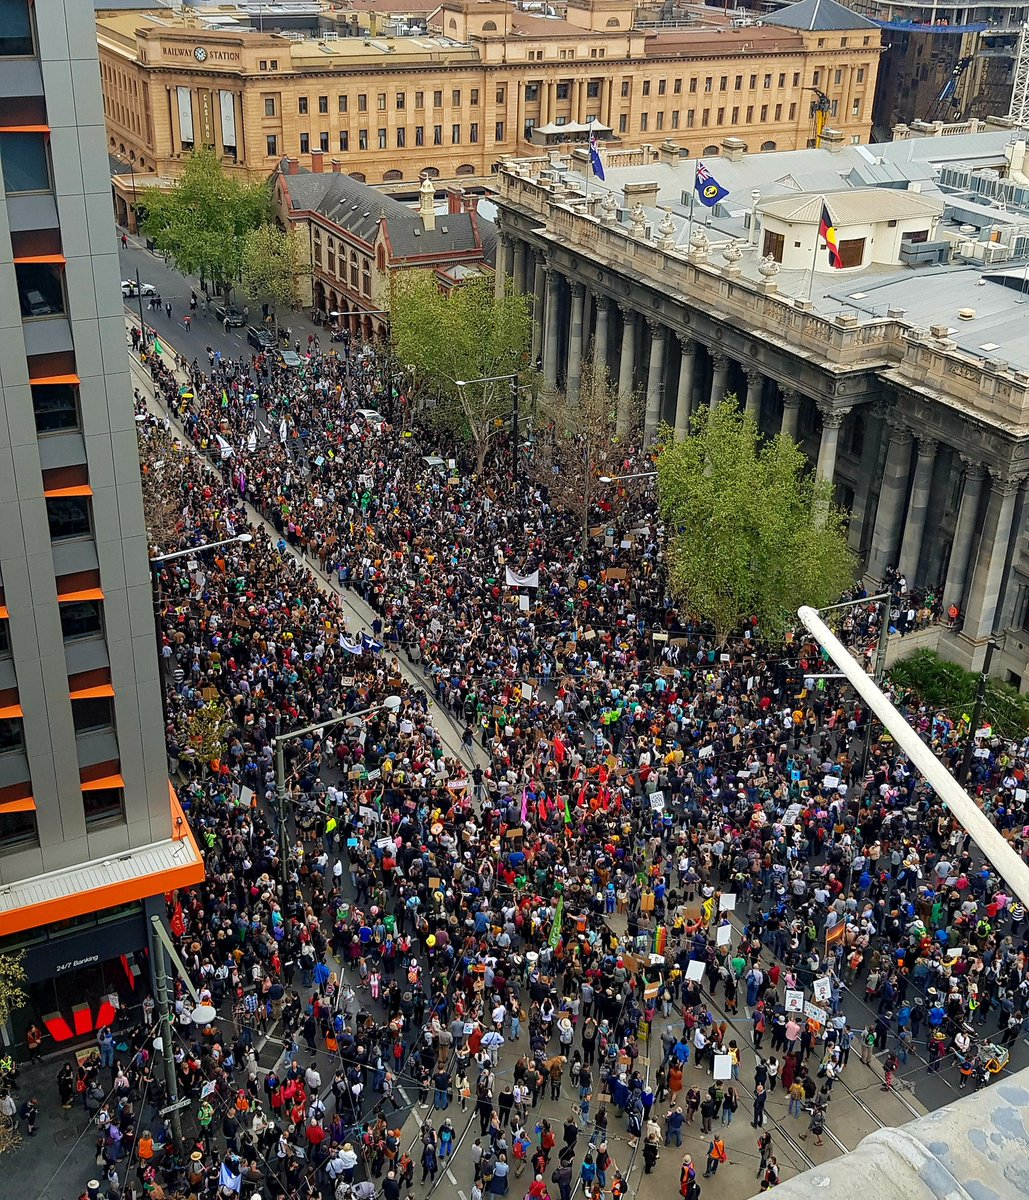 Amazing start to the #ClimateStrike looking at these pictures from Australia. Hundreds of thousands of young people ready to be heard and demanding real #ClimateAction #FridaysForFuture